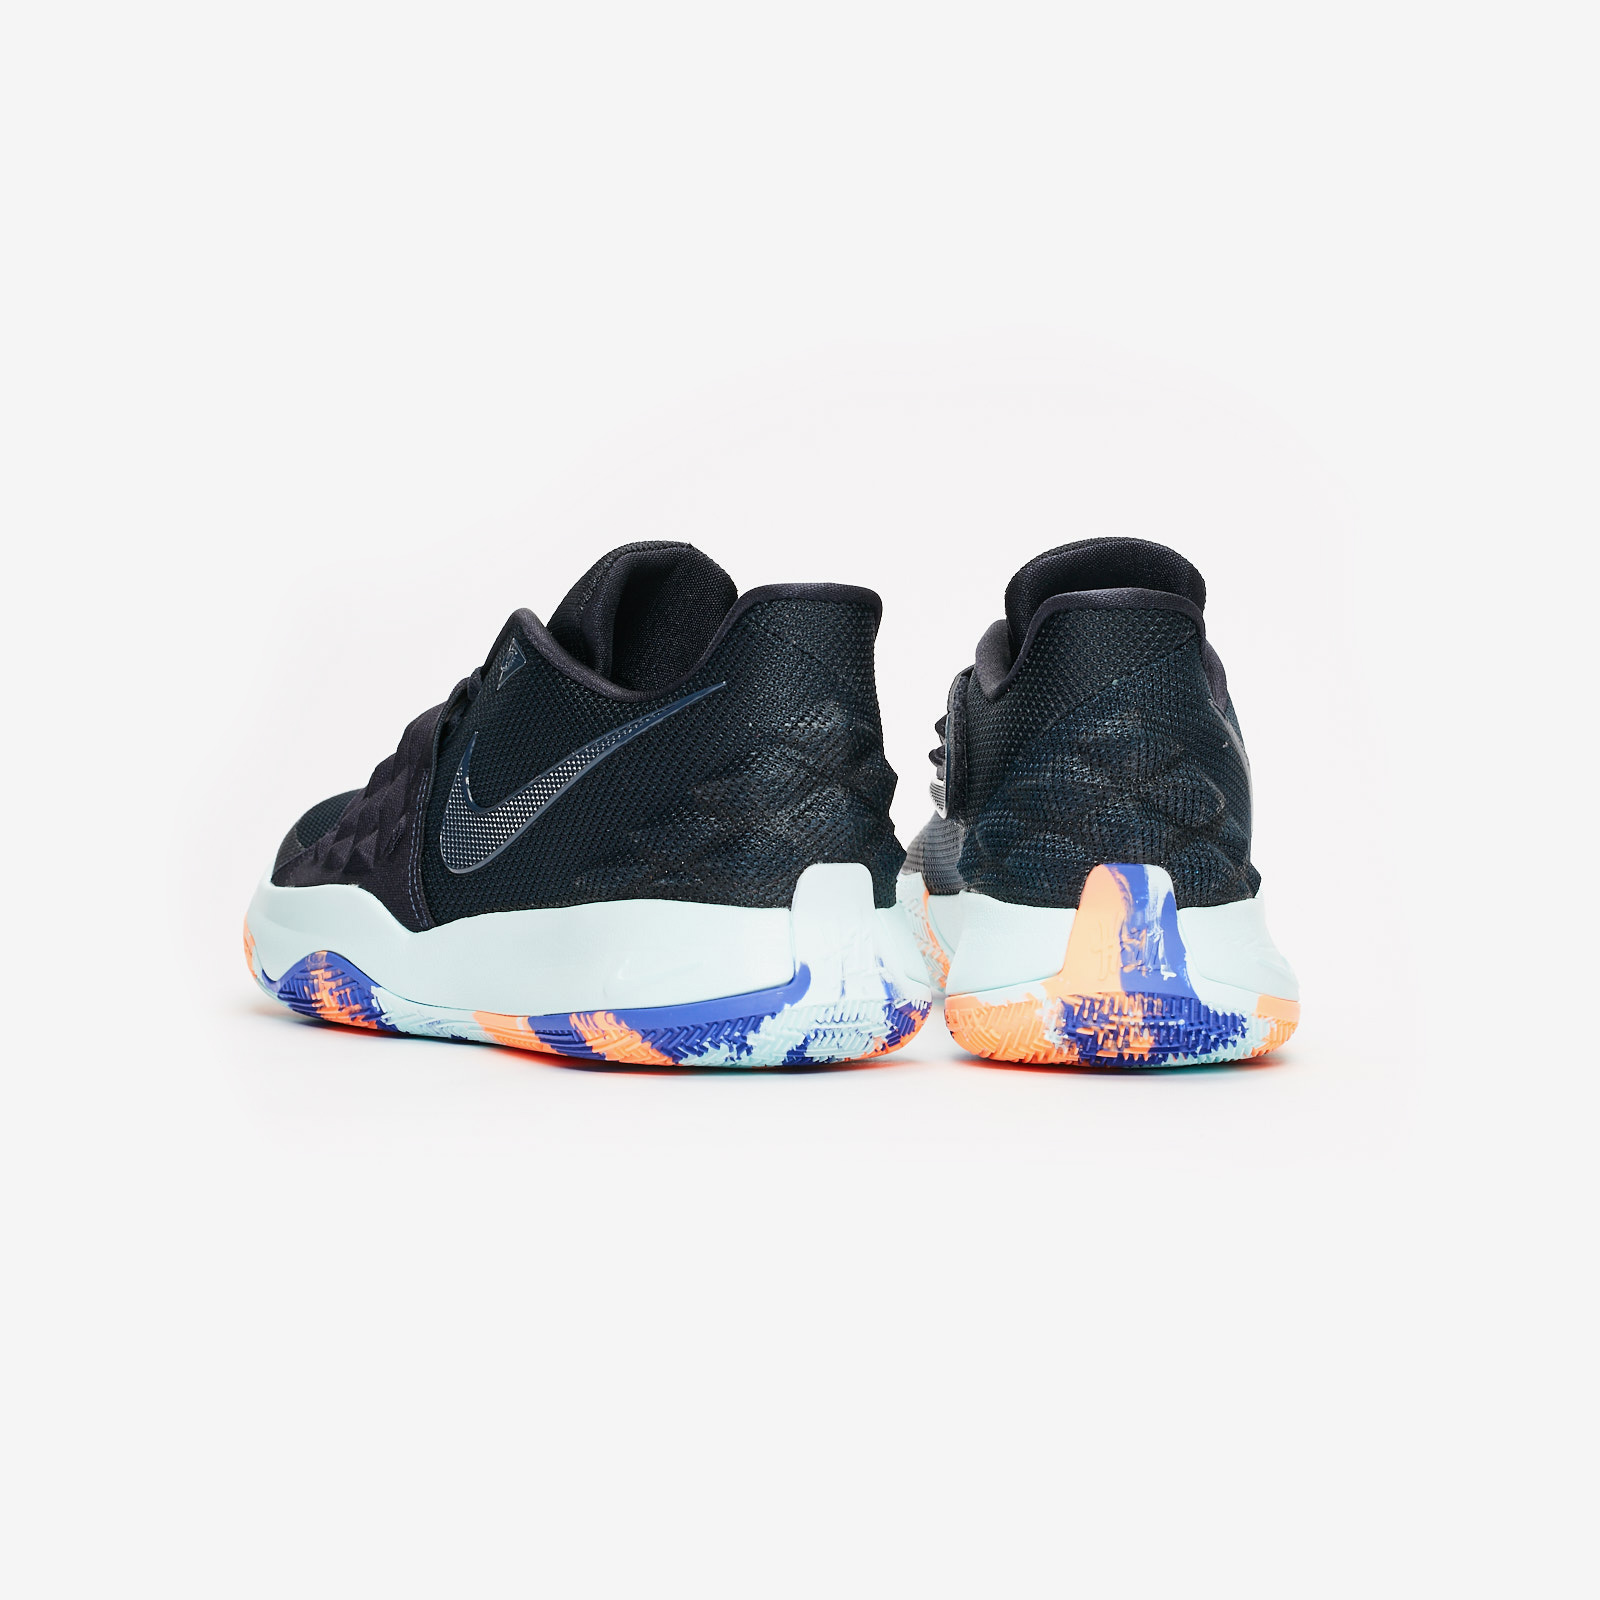 Nike Basketball Kyrie Low Nike Basketball Kyrie Low ... 9b697f66d